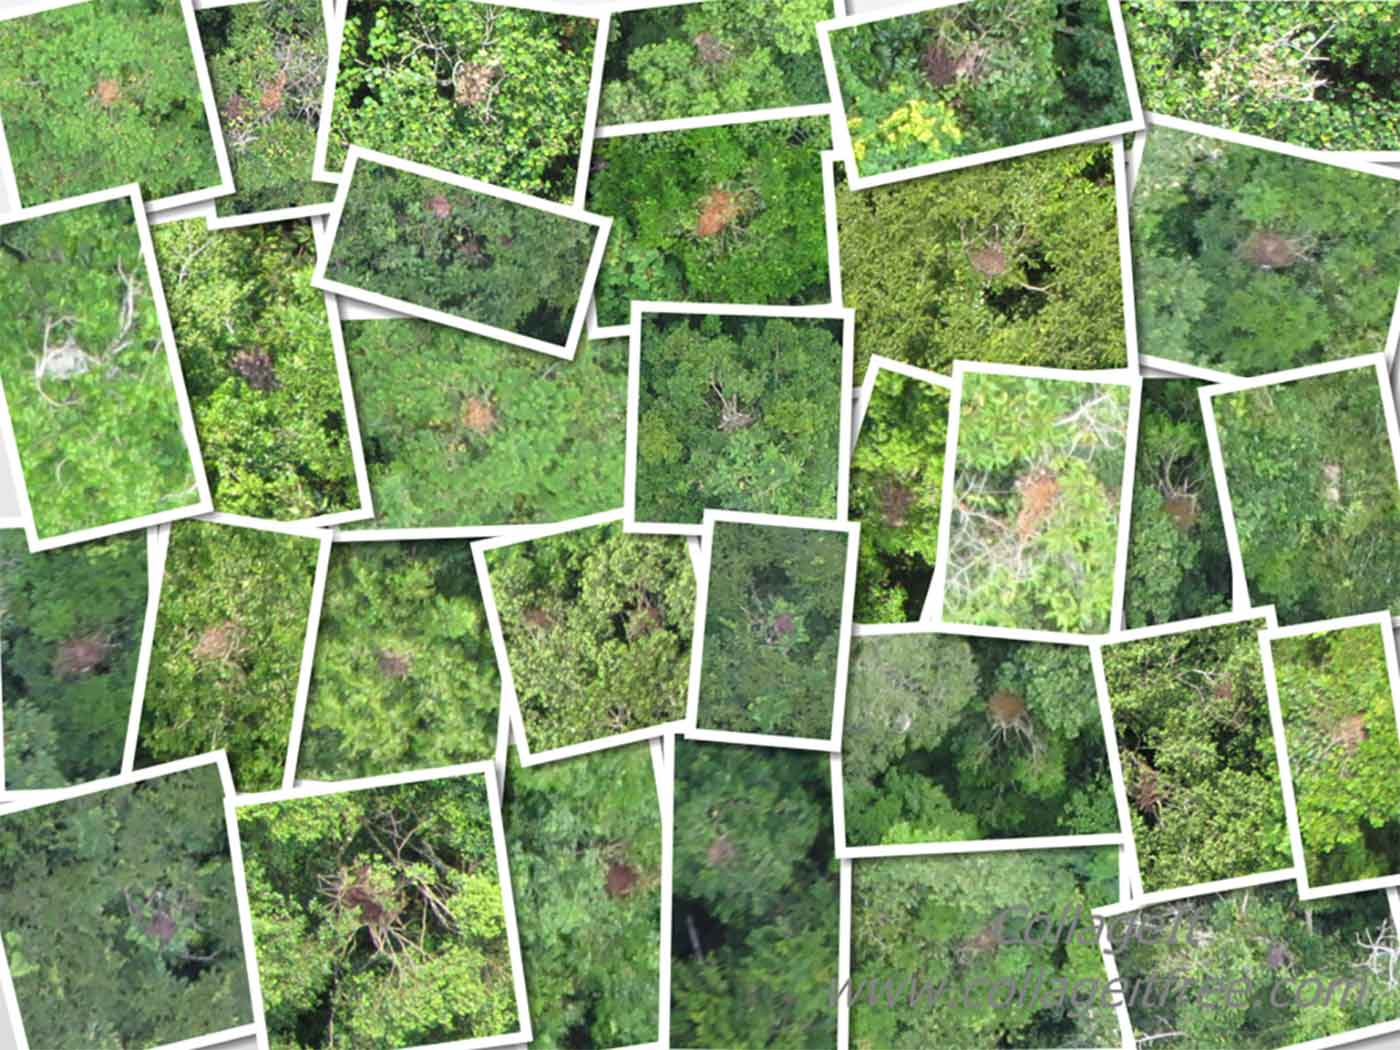 Collage of orangutan nests in SE Asian rain forests taken by cameras on board Conservation Drones.